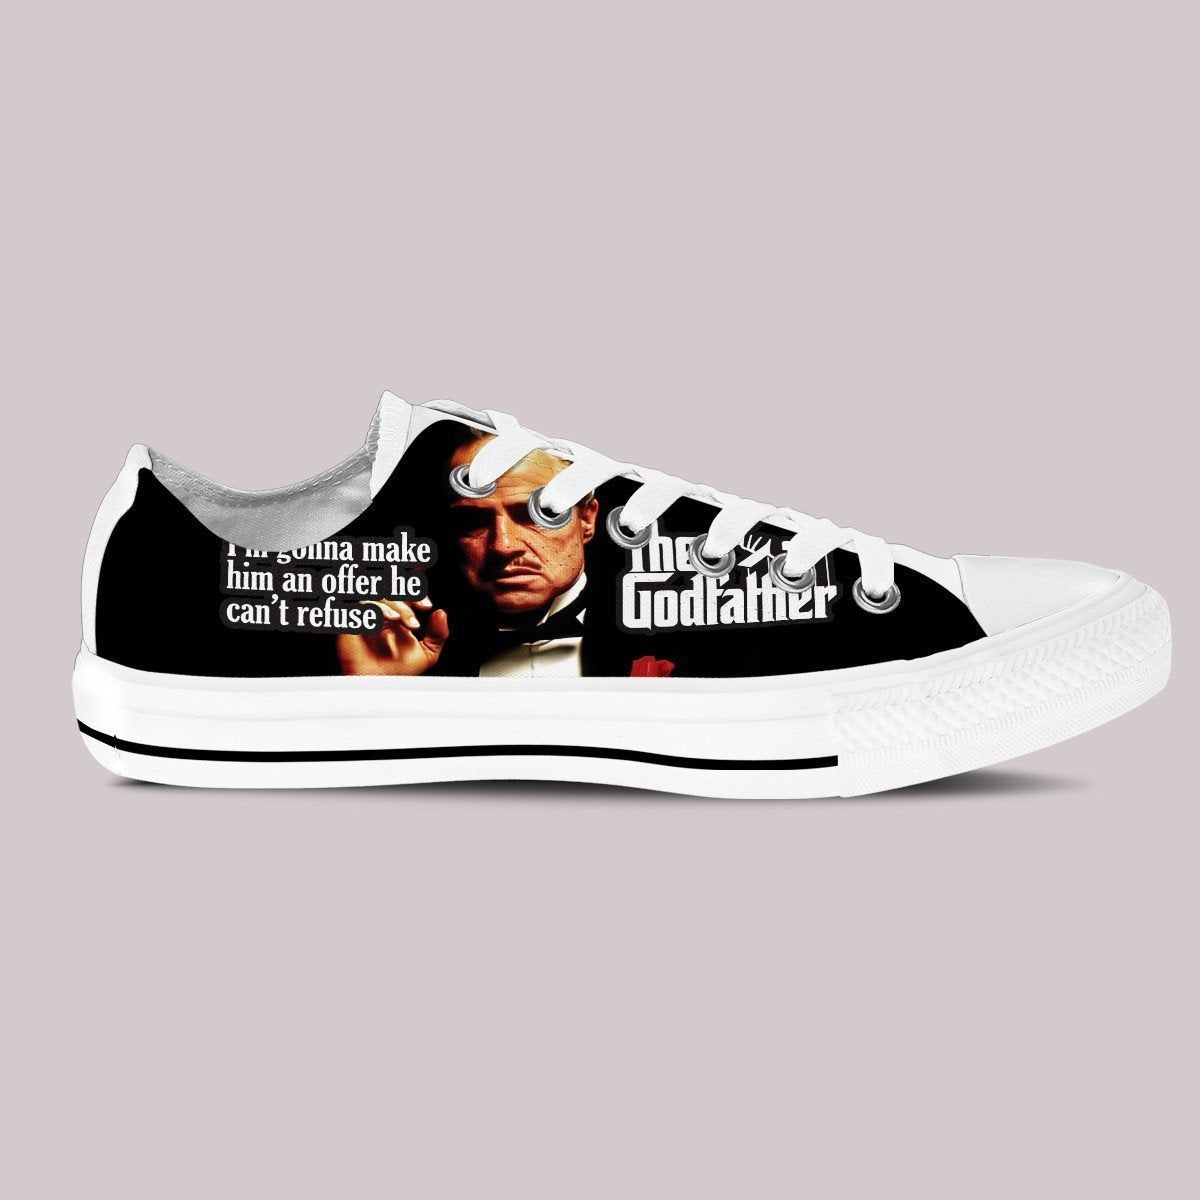 the godfather mens low cut sneakers